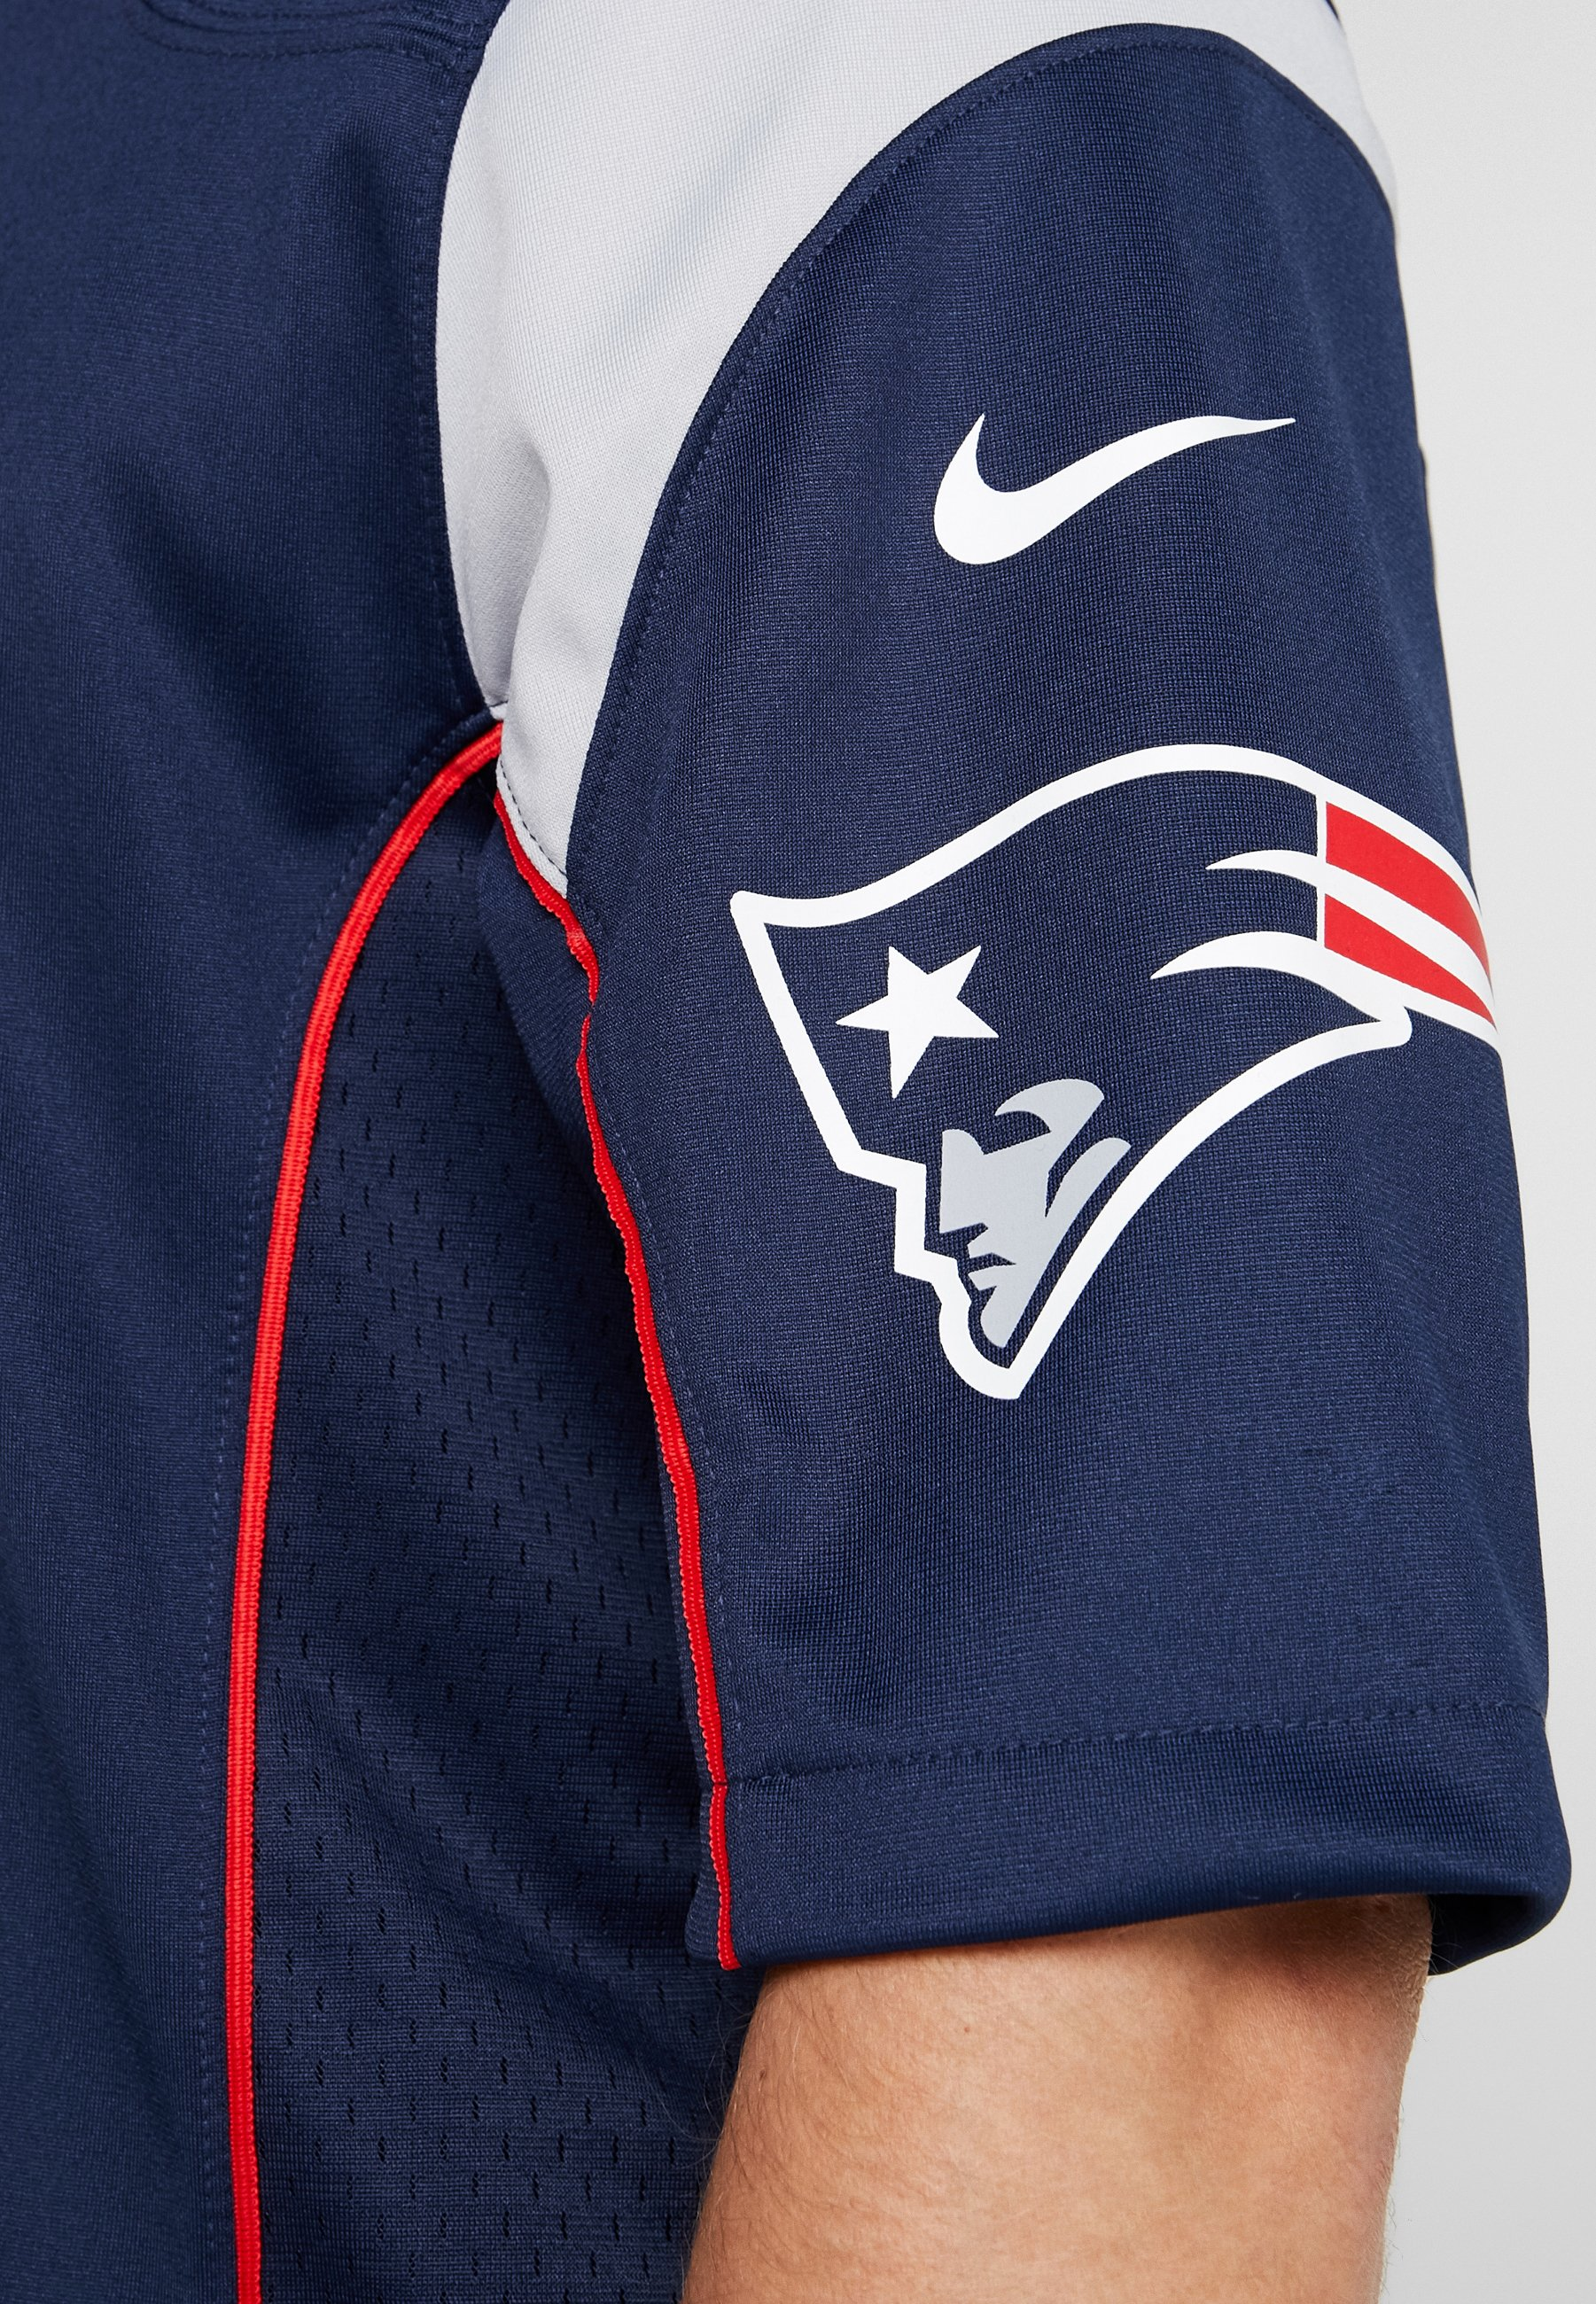 Navy New England College Grey Red De Nike university Supporter wolf PatriotsArticle Performance Nfl Tom Brady DH29IWEY